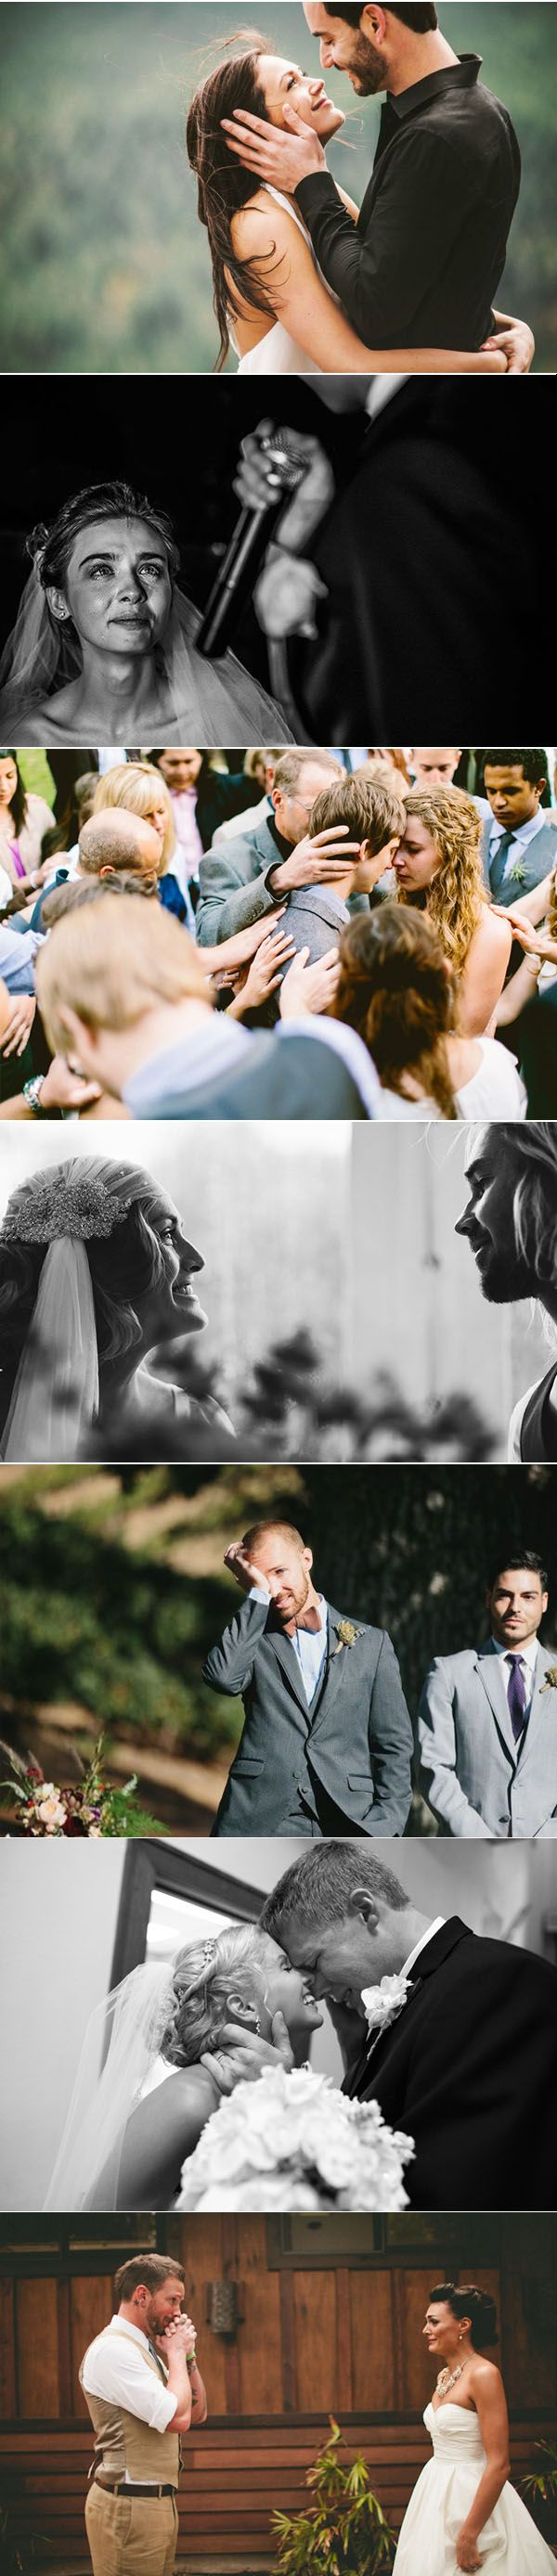 25 most emotional candid moments of brides & grooms in real weddings